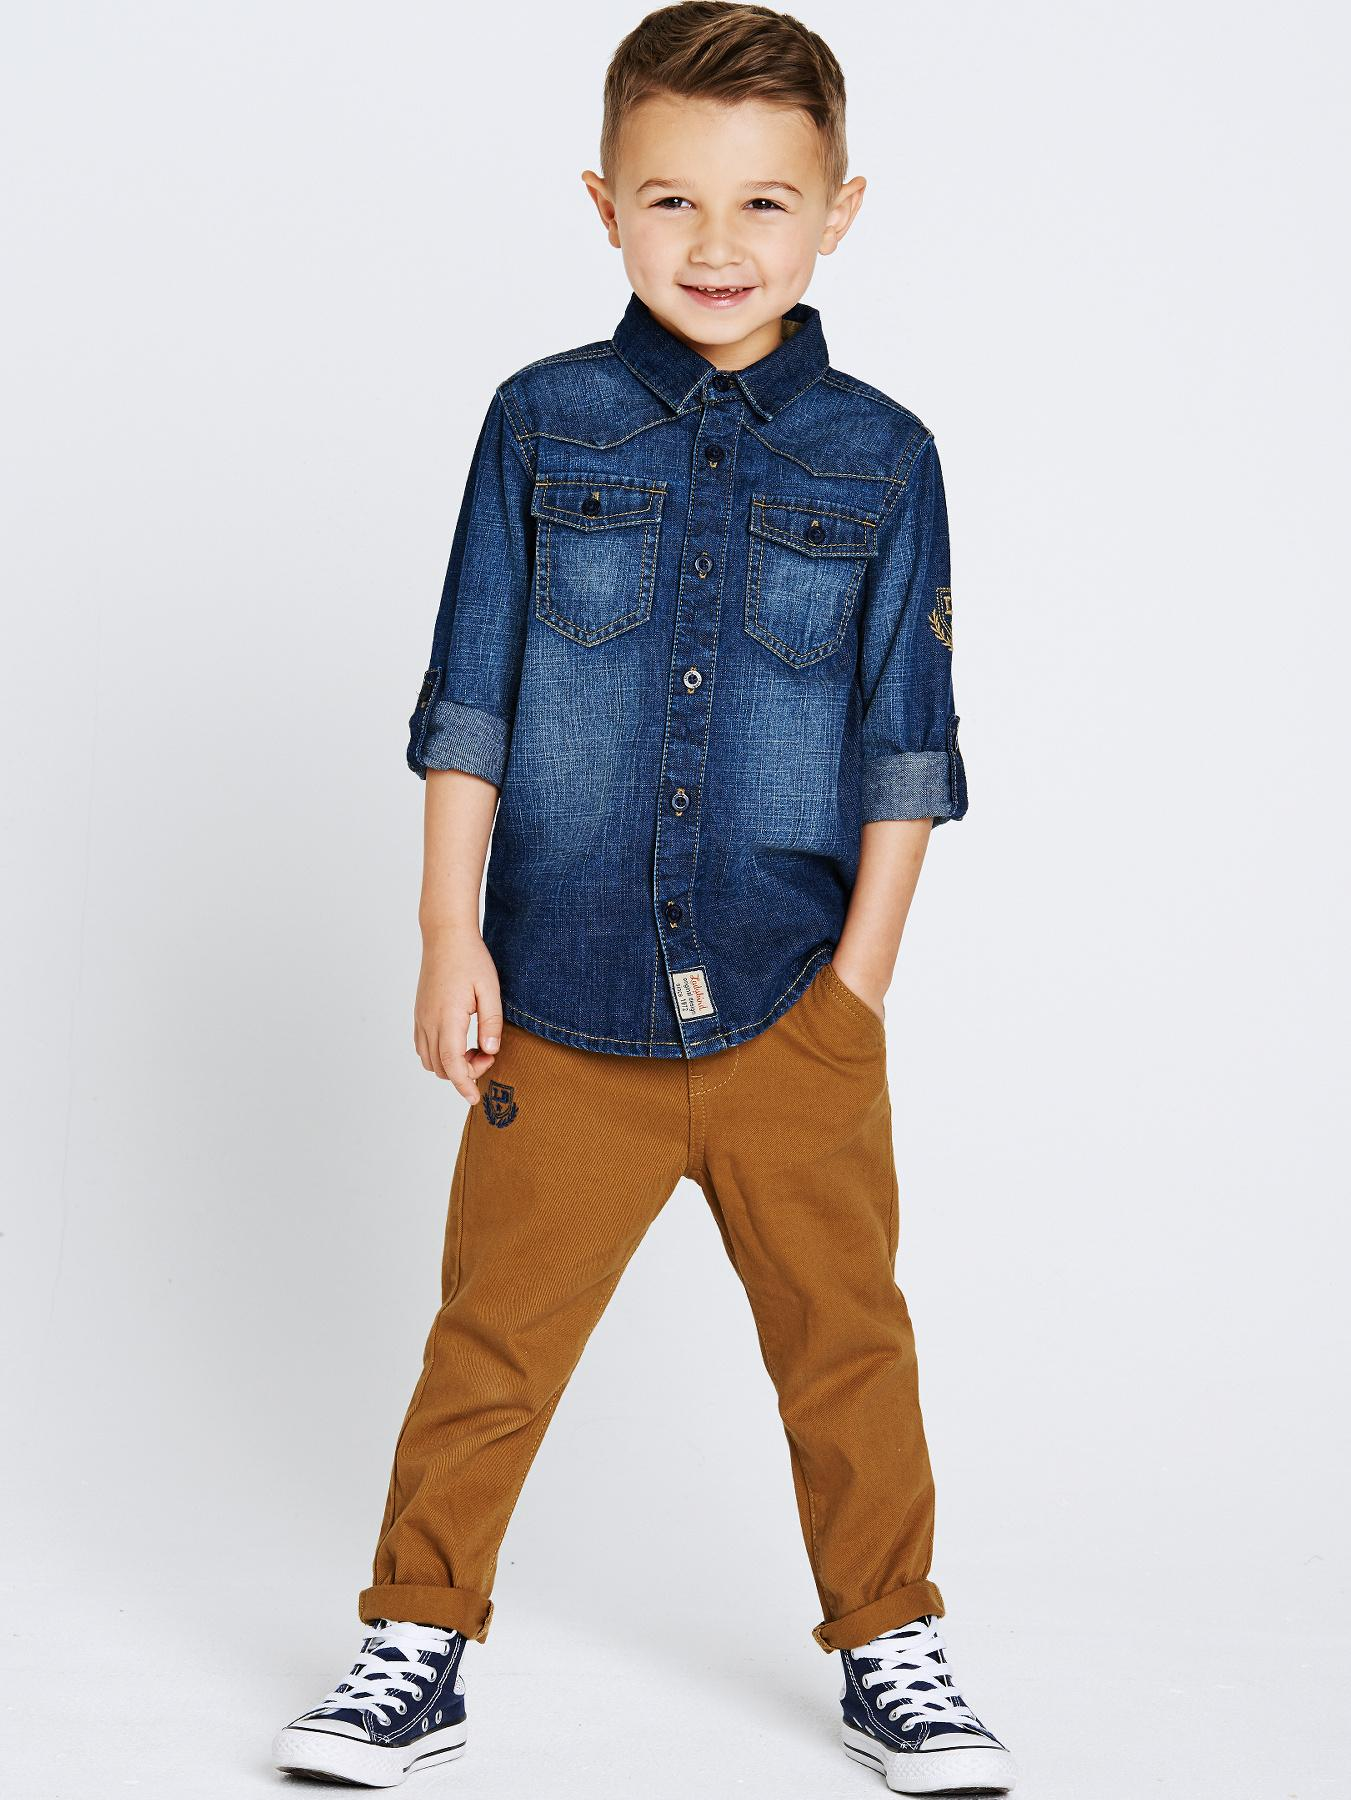 Ladybird Boys Denim Shirt and Chinos Set